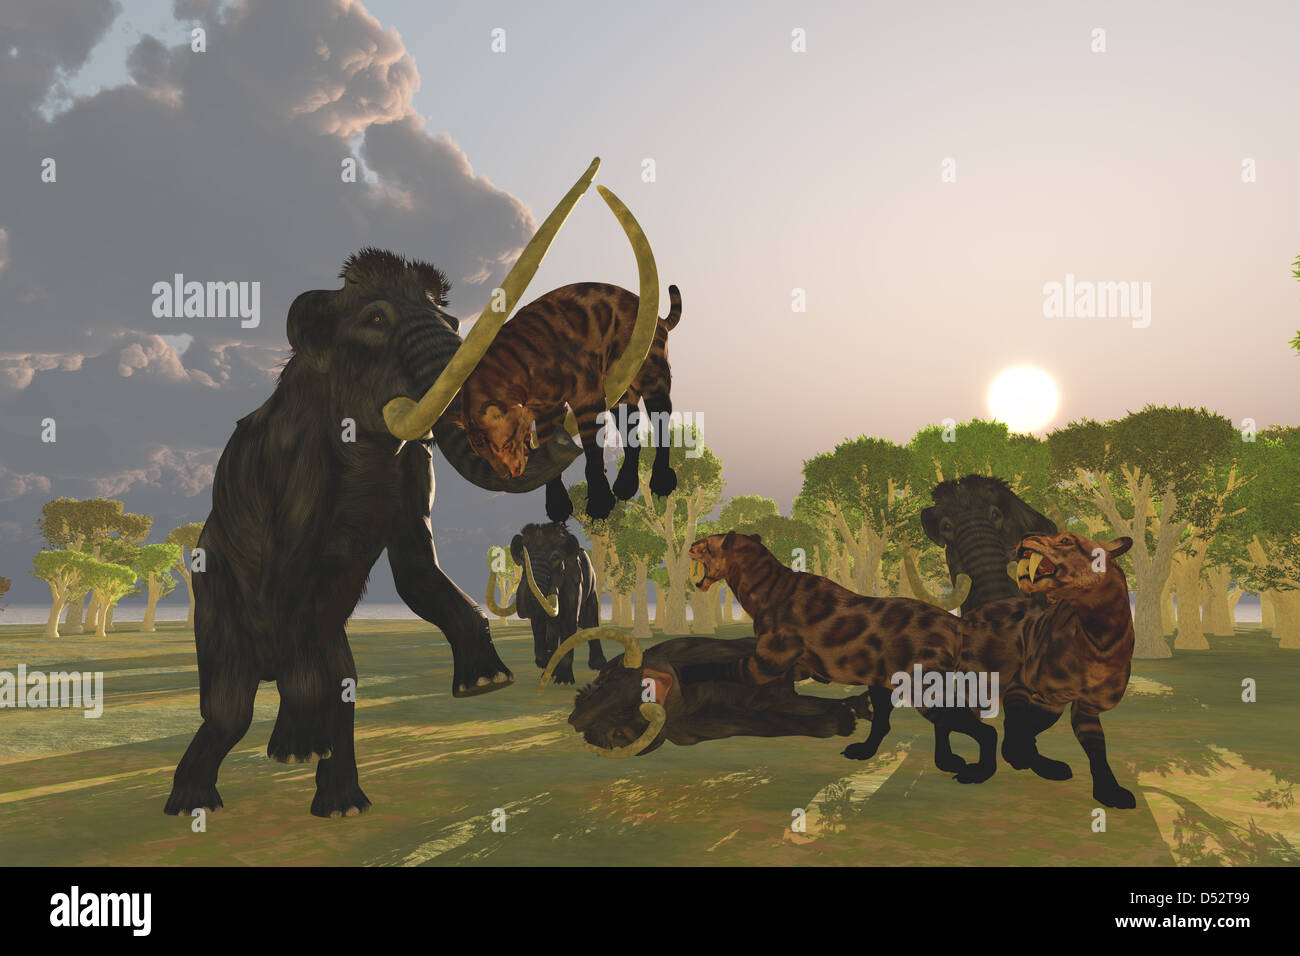 A pack of Saber Tooth Cats attack a small Woolly Mammoth while his herd comes to the rescue. - Stock Image